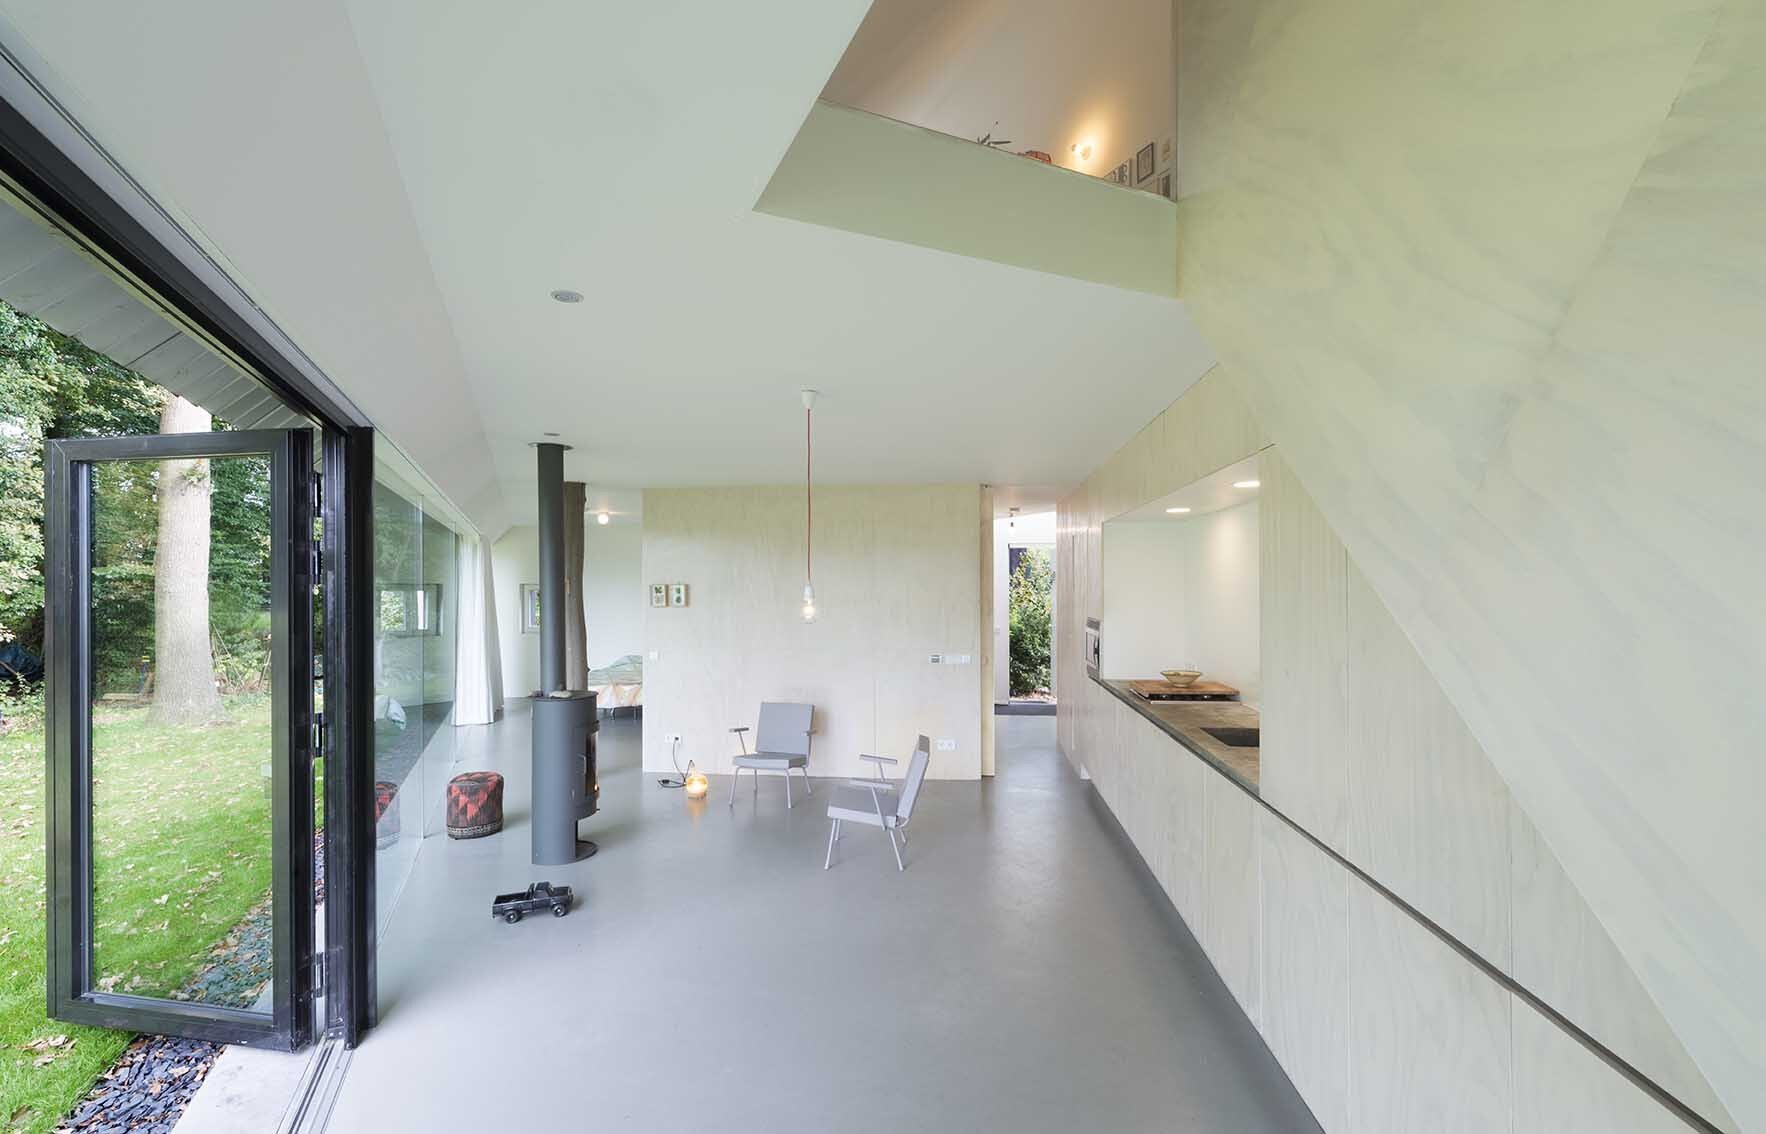 House in Almen - Barend Koolhaas - The Netherlands - Kitchen and Living Area - Humble Homes